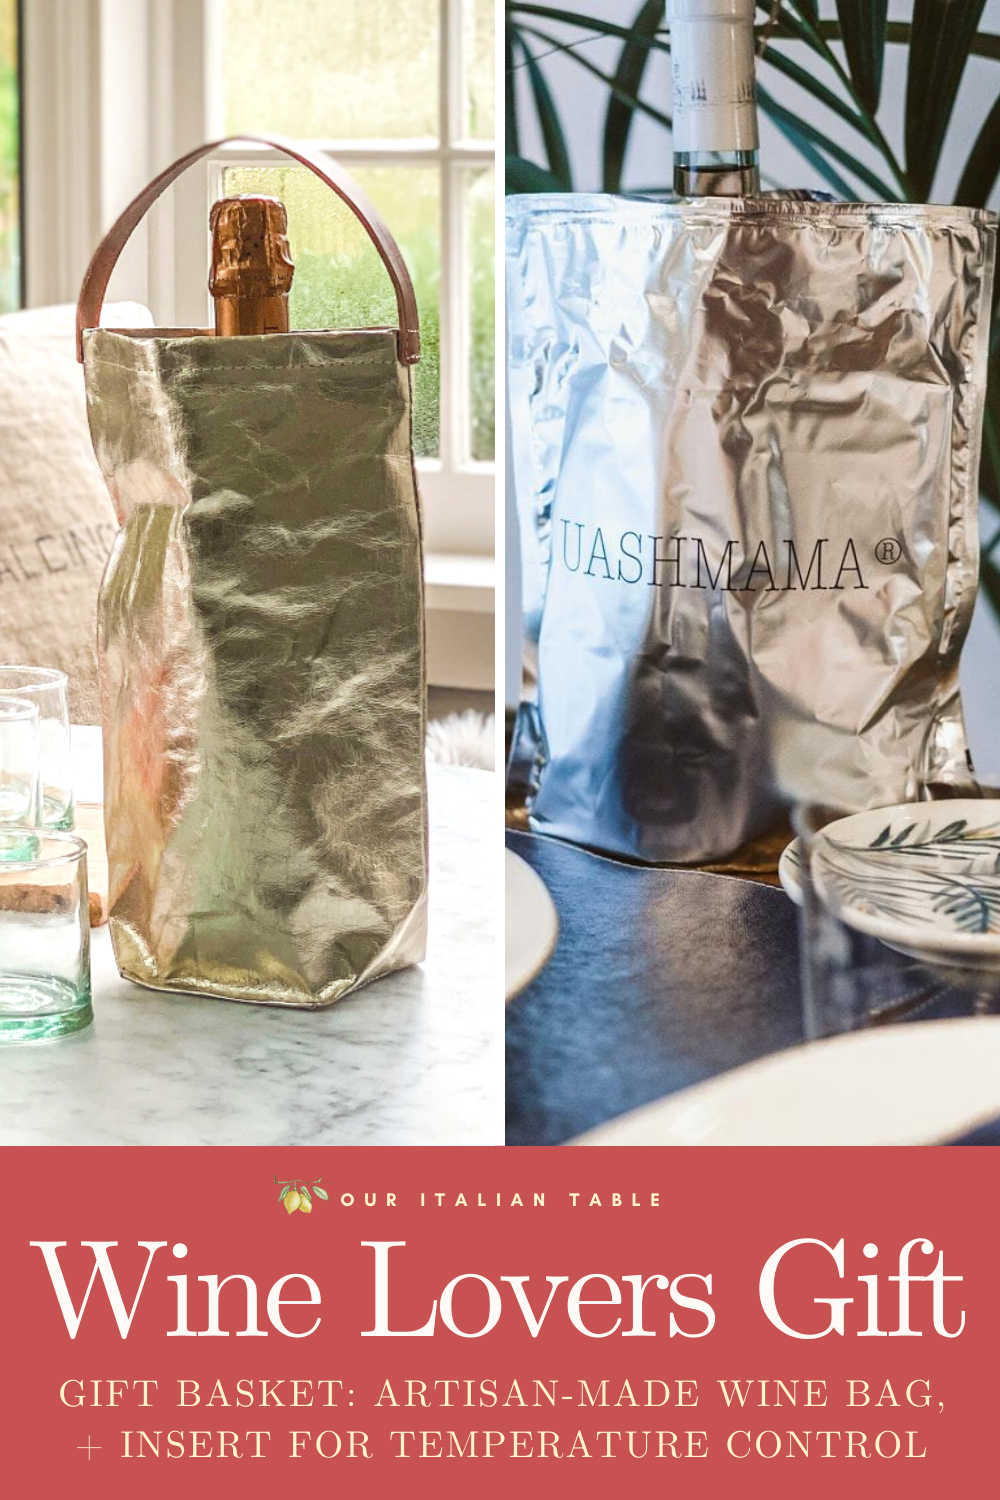 Send the best gift bundle to that special wine aficionado in your life: a collection of artisan made wine accessories. Each gift set includes a handmade wine bag from Tuscany and an insert to control the wine temperature. This is the perfect hostess gift, or holiday gift for wine lovers. #winegifts #giftsforwinelovers #hostessgift #hostessgifts #winebag #winetote #foodiegifts #foodiegift #giftsforfoodie #artisanmade #madeinitaly #holidaygifts #giftbasket #holidaygiftideas